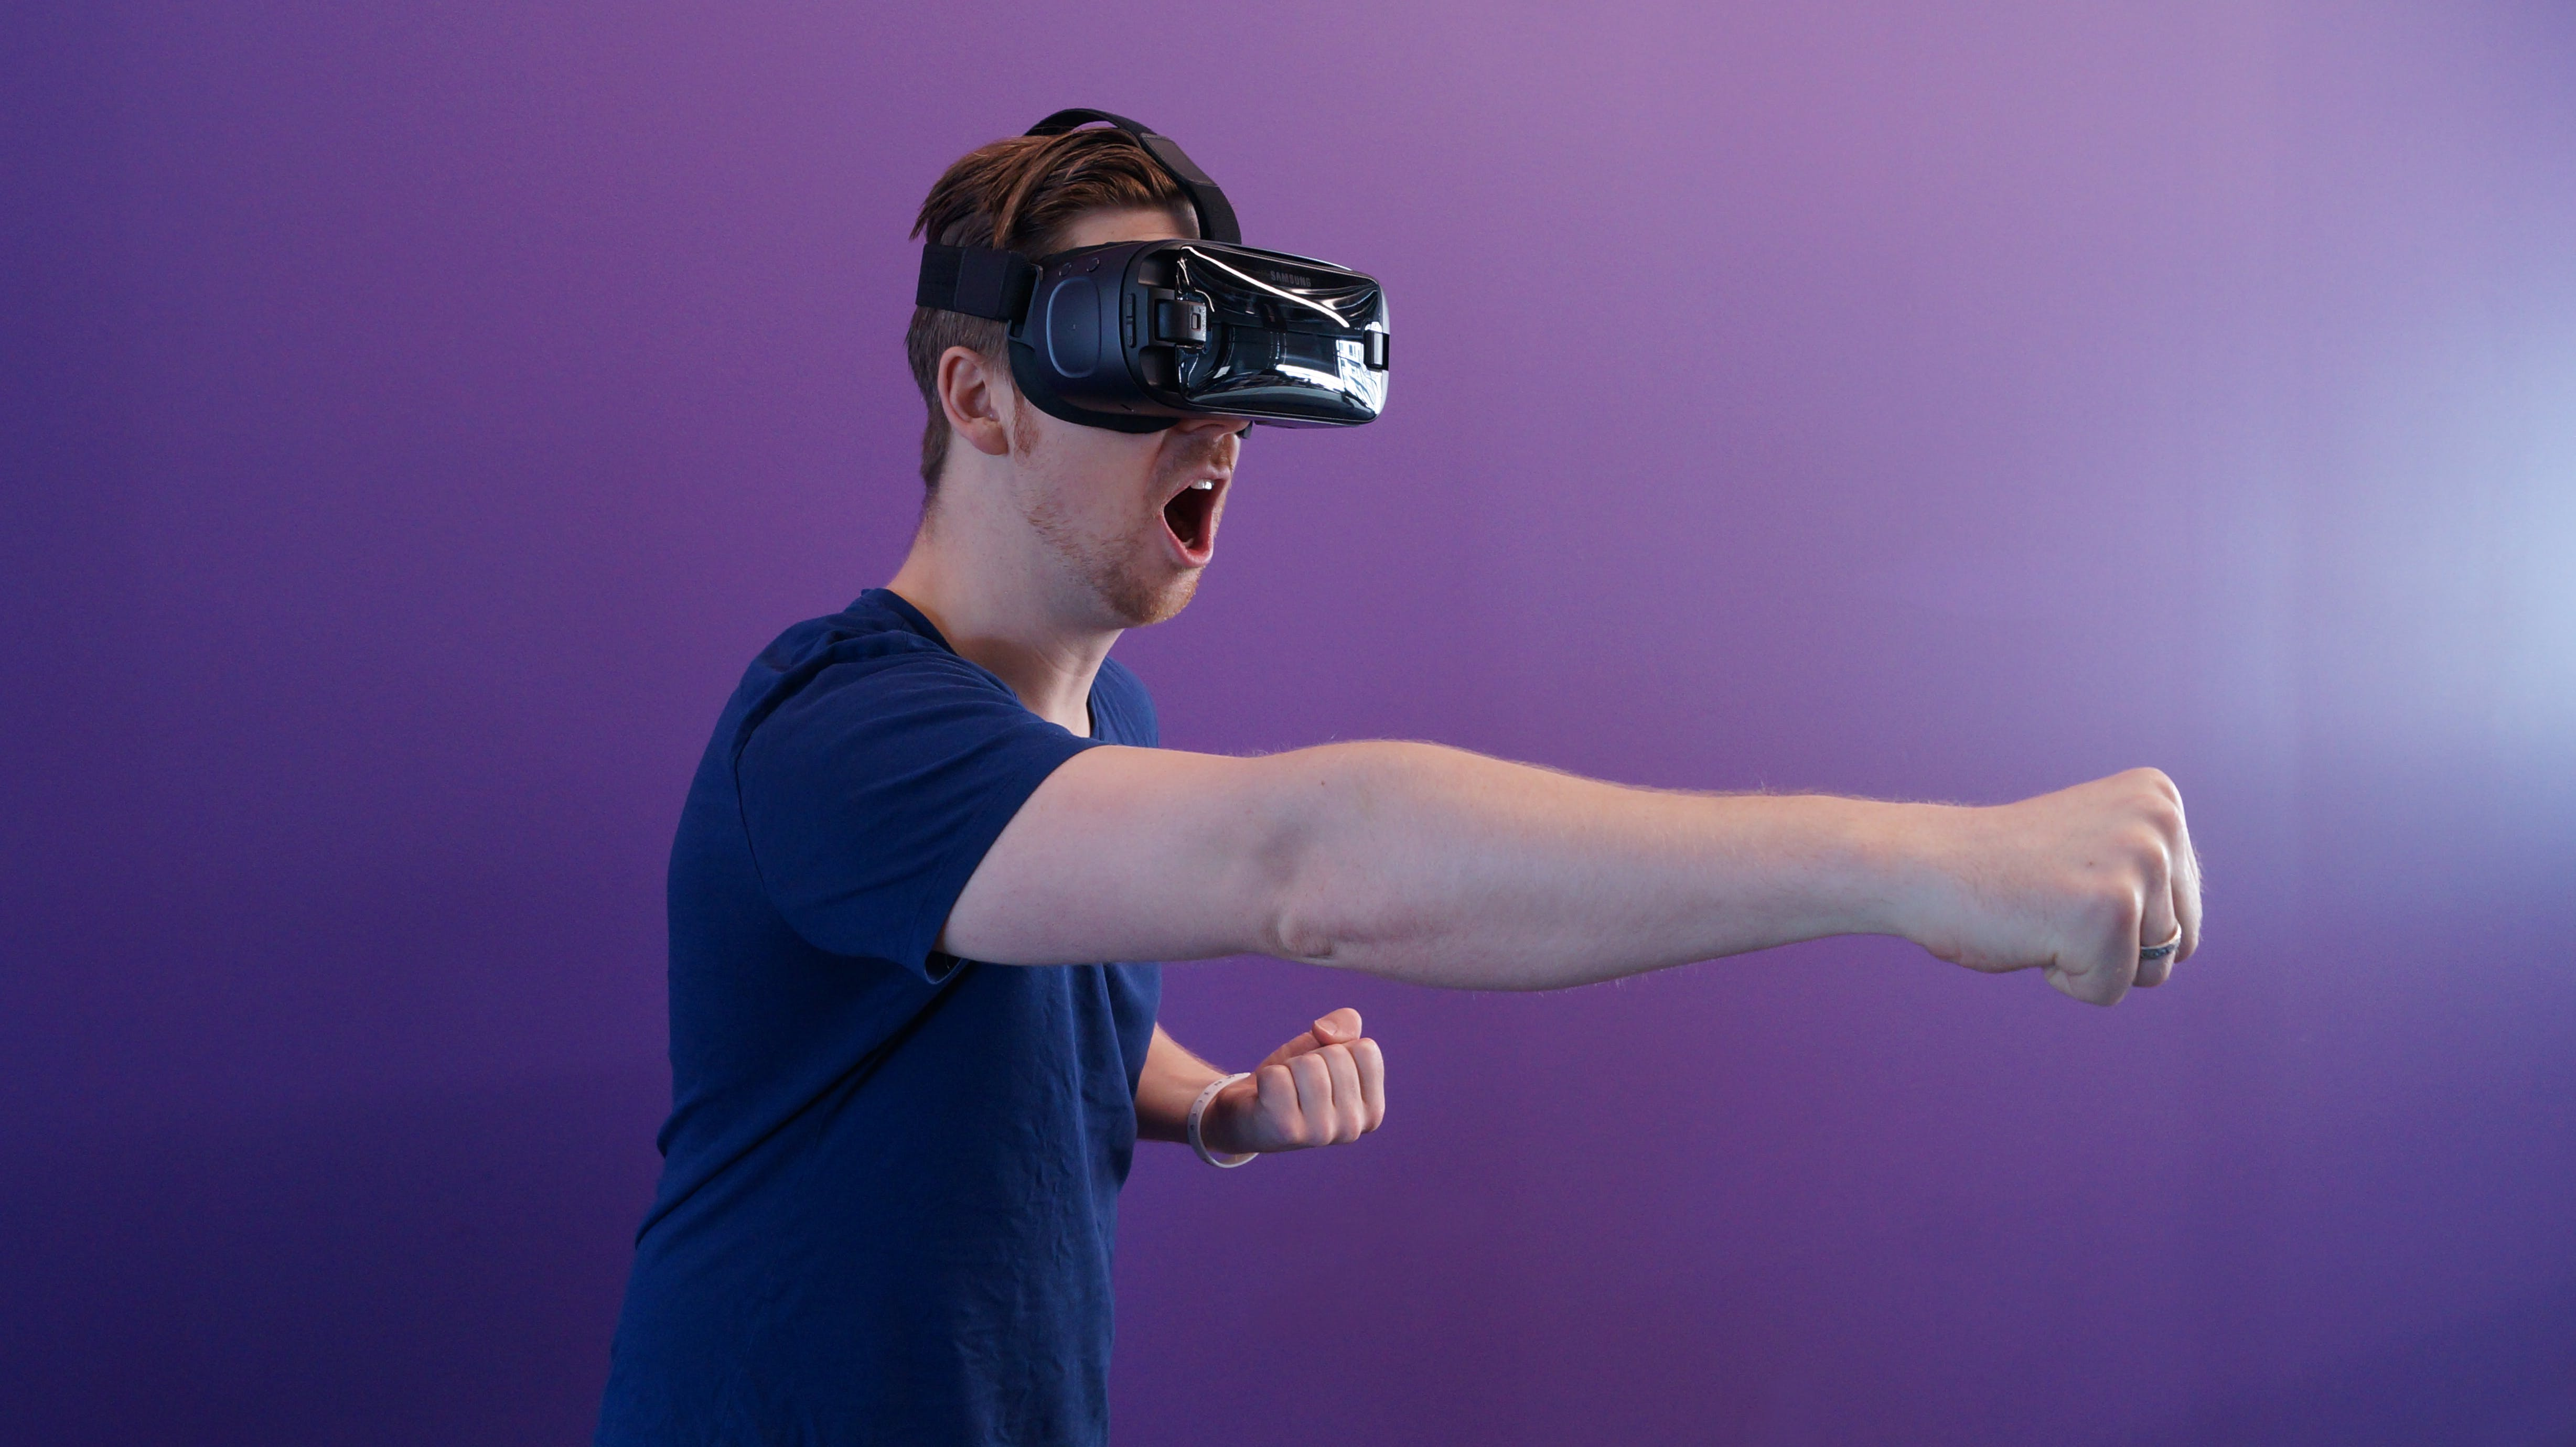 Photo Of Man Using Virtual Reality Headset